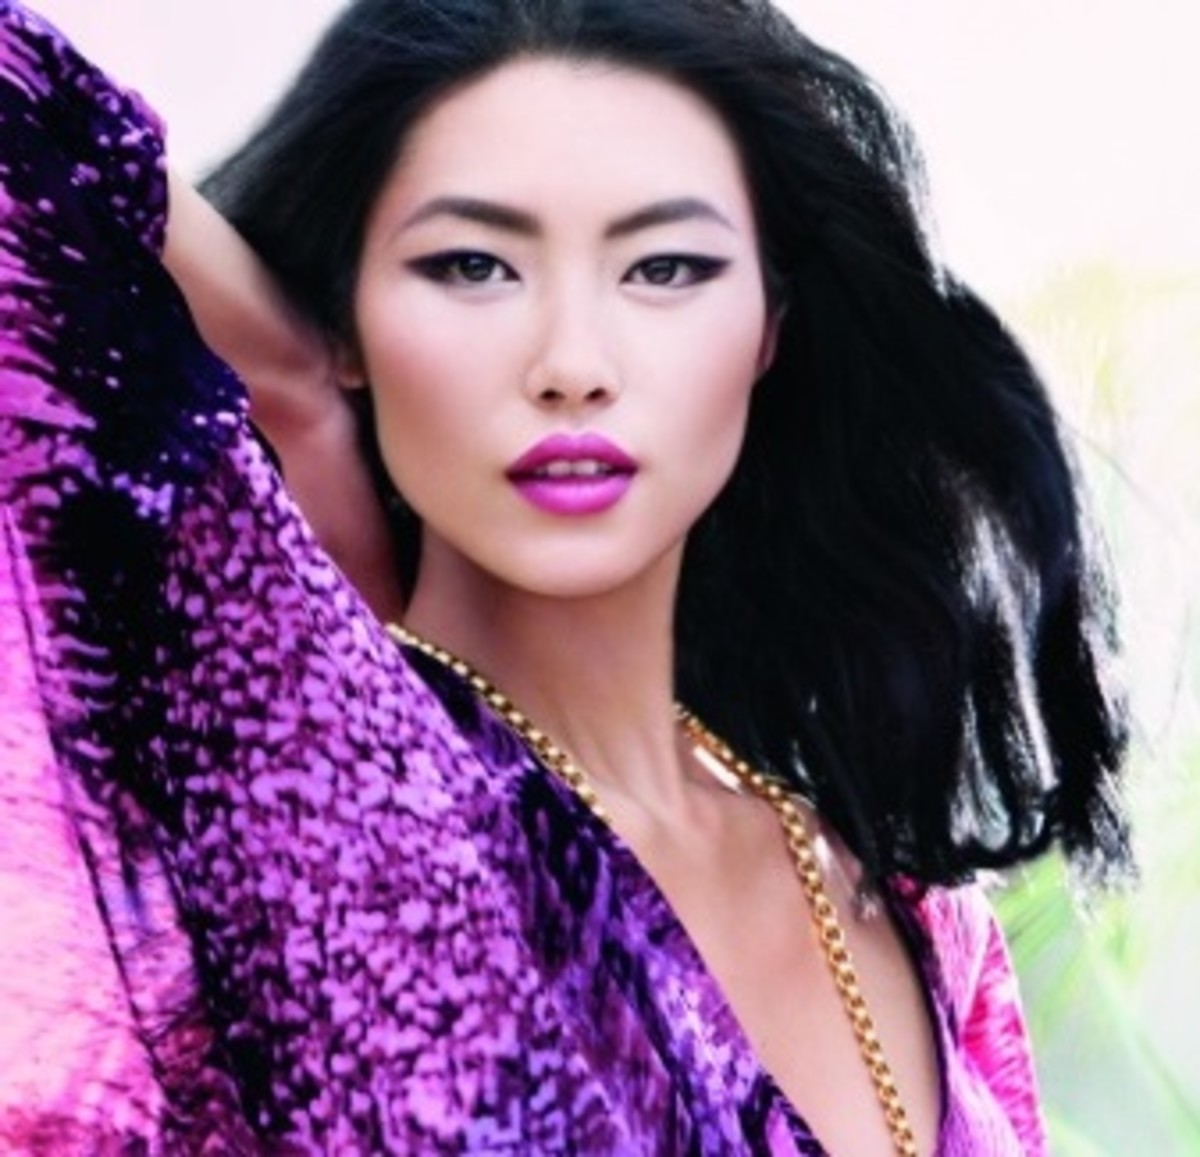 Purple lipsticks are a traditional favorite for Asian skin.